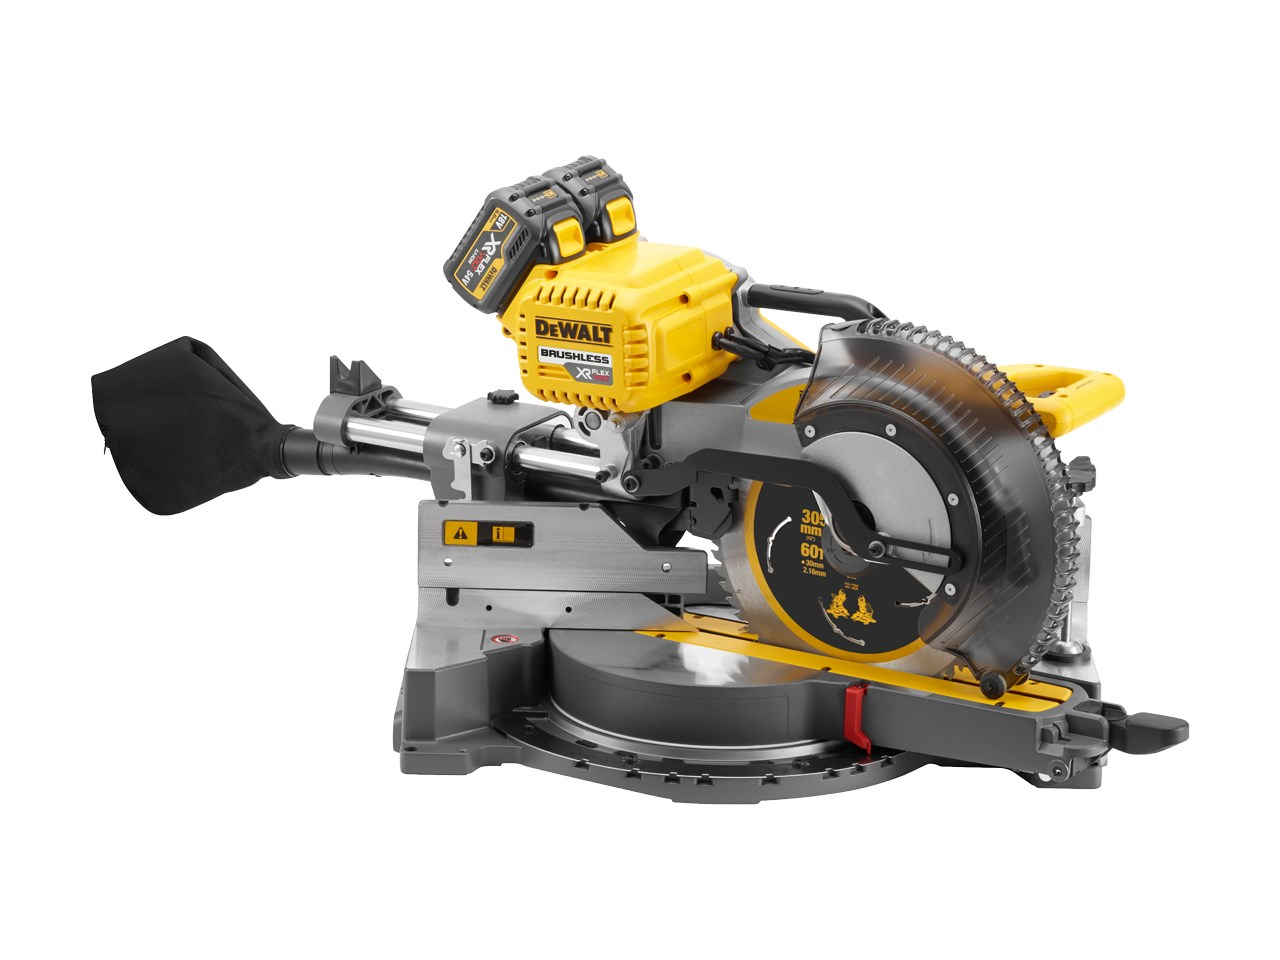 - 54V XR Flex Volt Mitre Saw